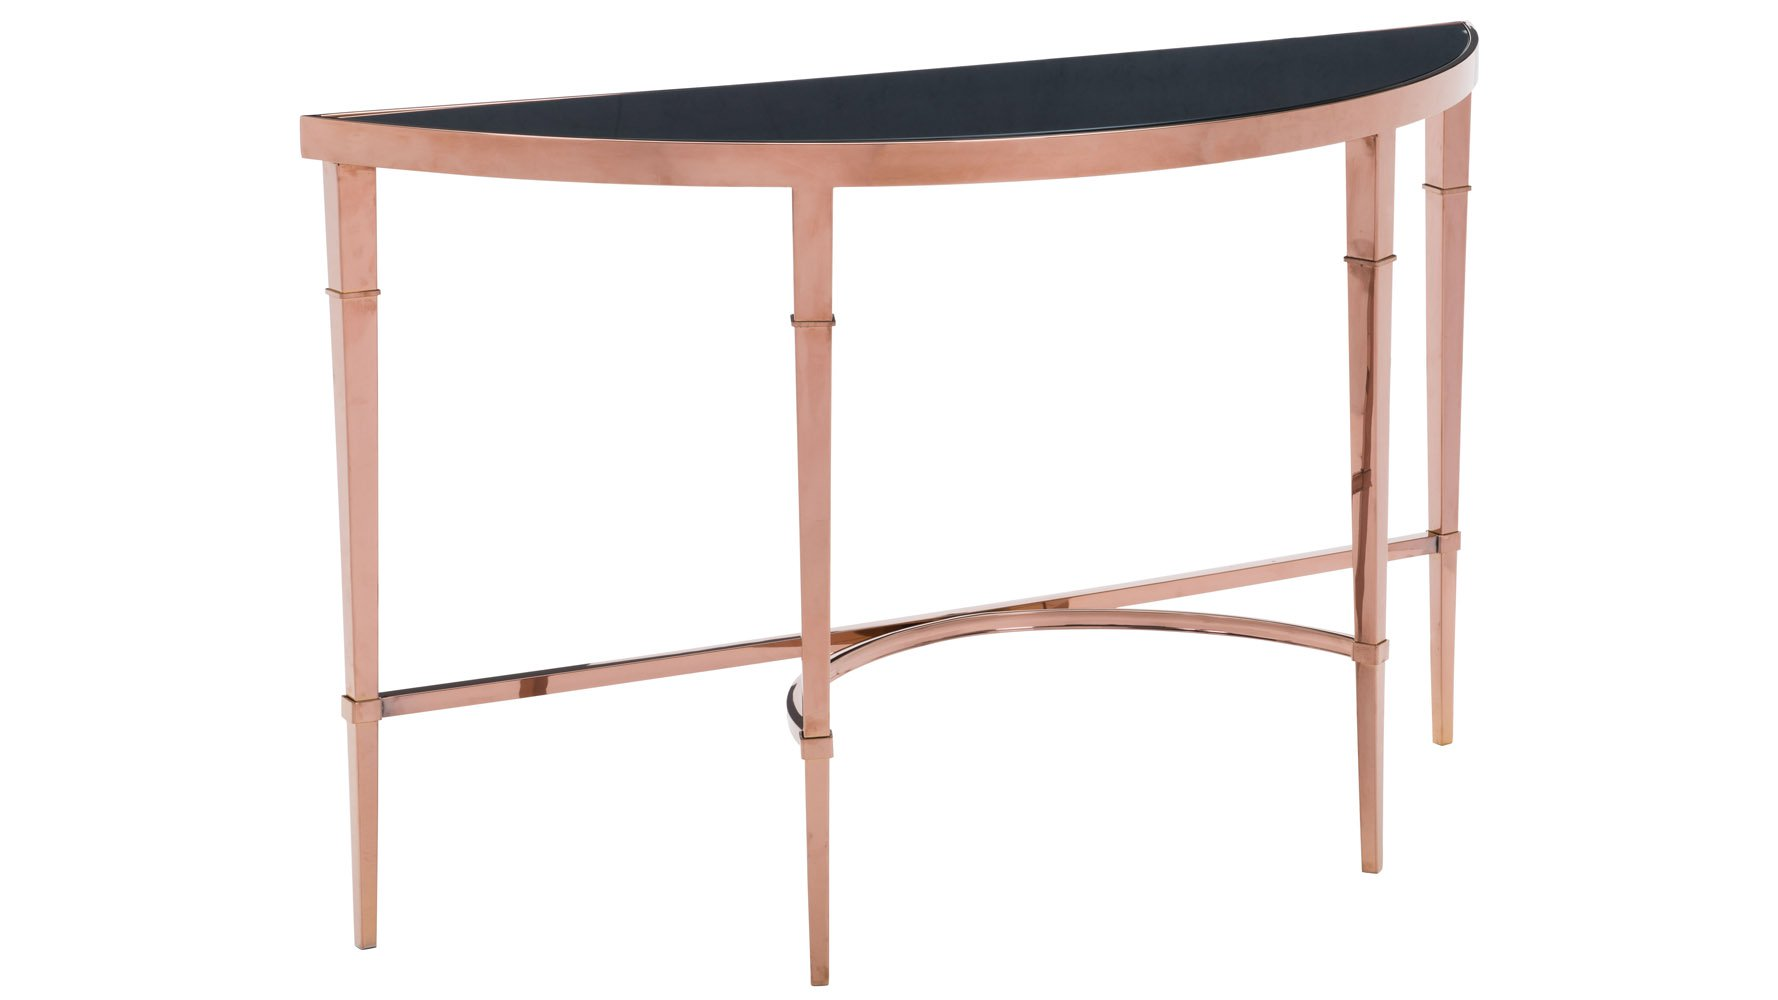 modern pascale glass console table rose gold black zuri furniture and accent patio chairs clearance aamerica heavy duty umbrella stand ikea pedestal chair set unusual bedside